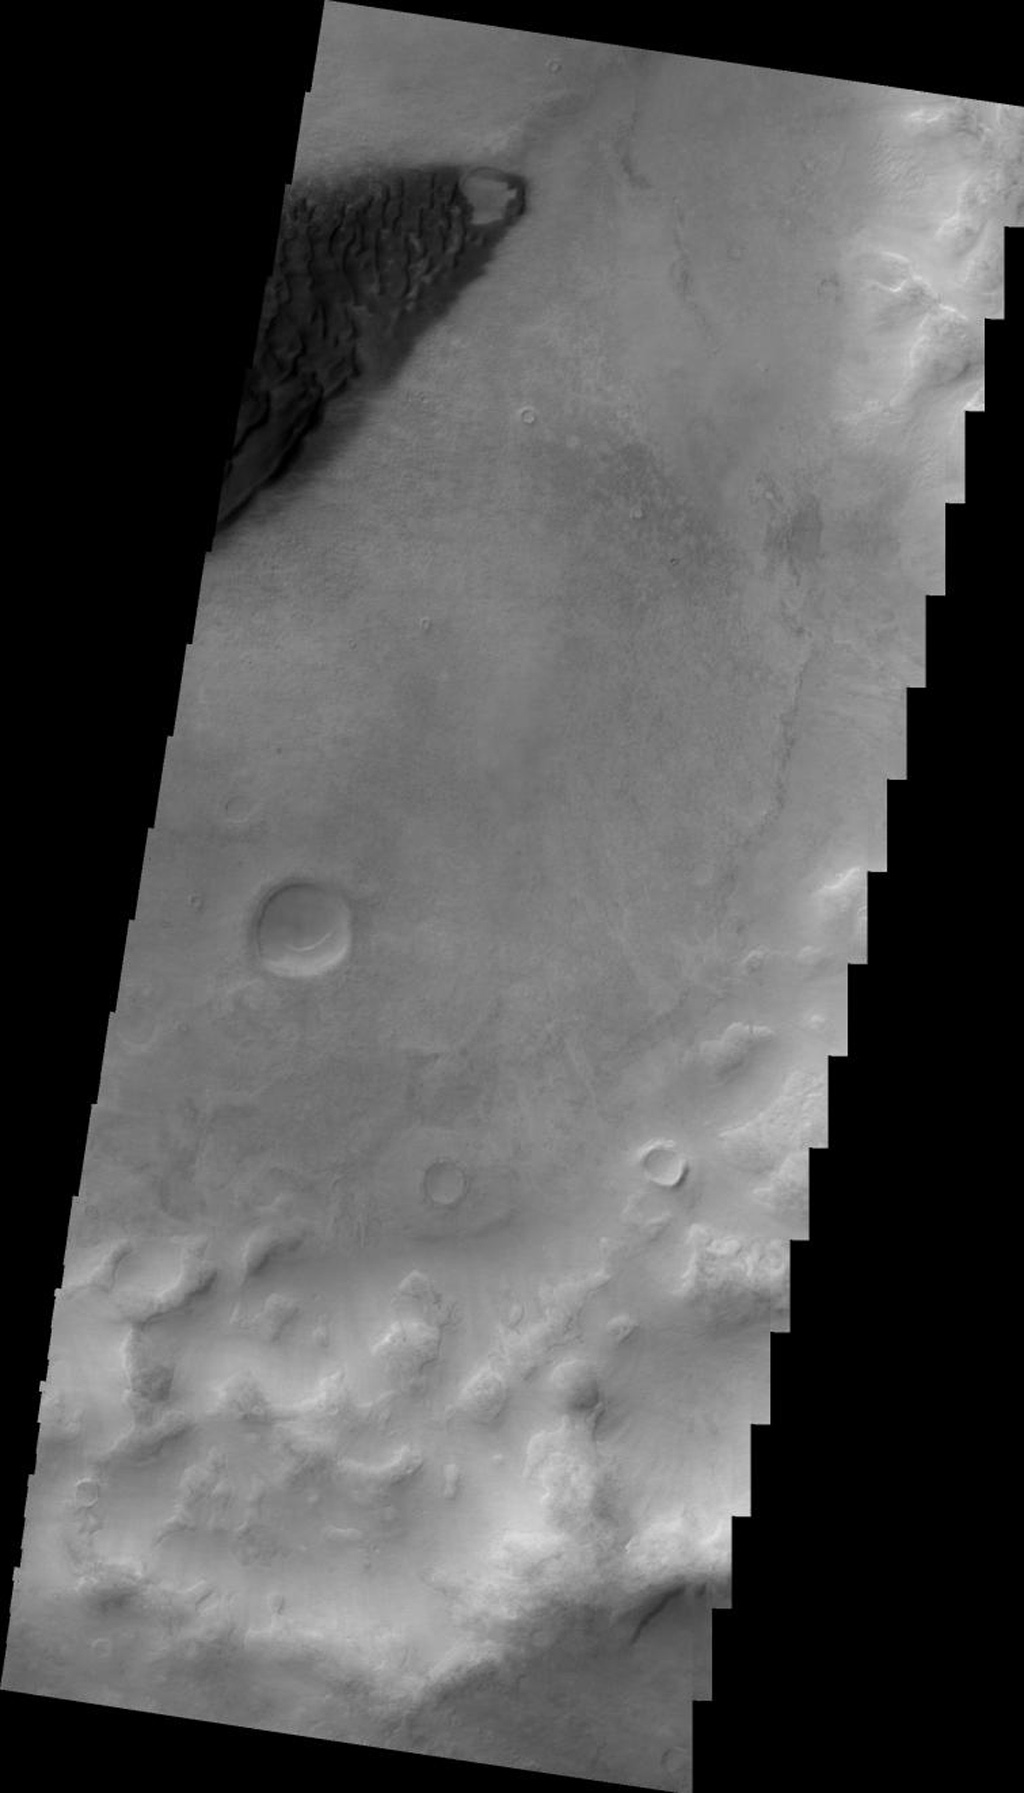 This image from NASA's Mars Odyssey shows a portion of a dune field on the floor of an unnamed crater in Noachis Terra on Mars.